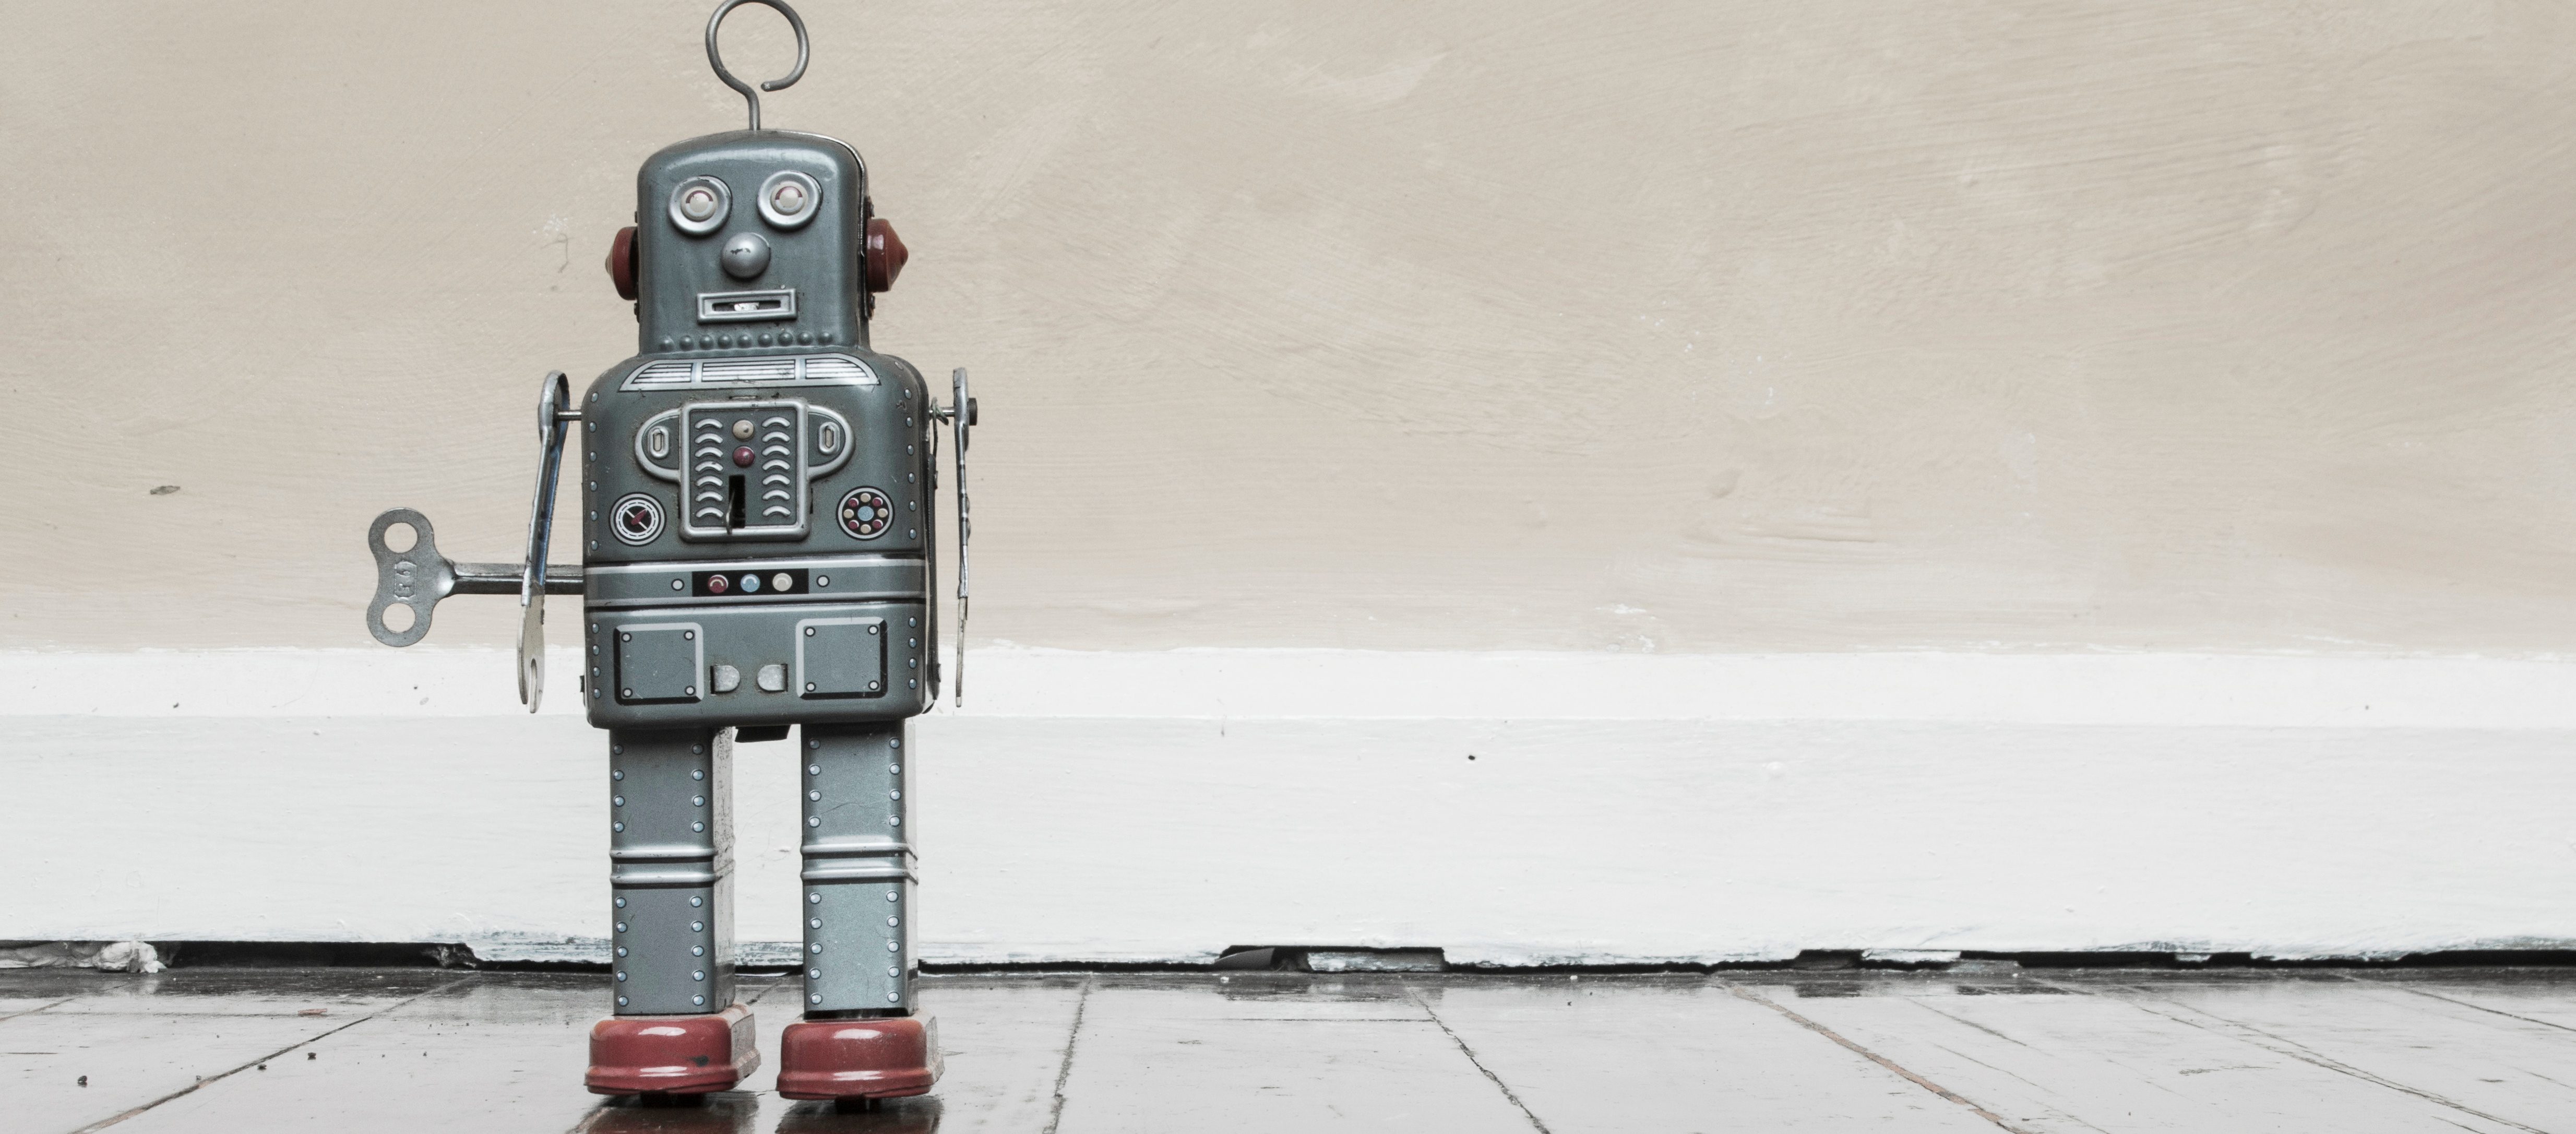 3 Stale Phrases That Make Salespeople Sound Robotic